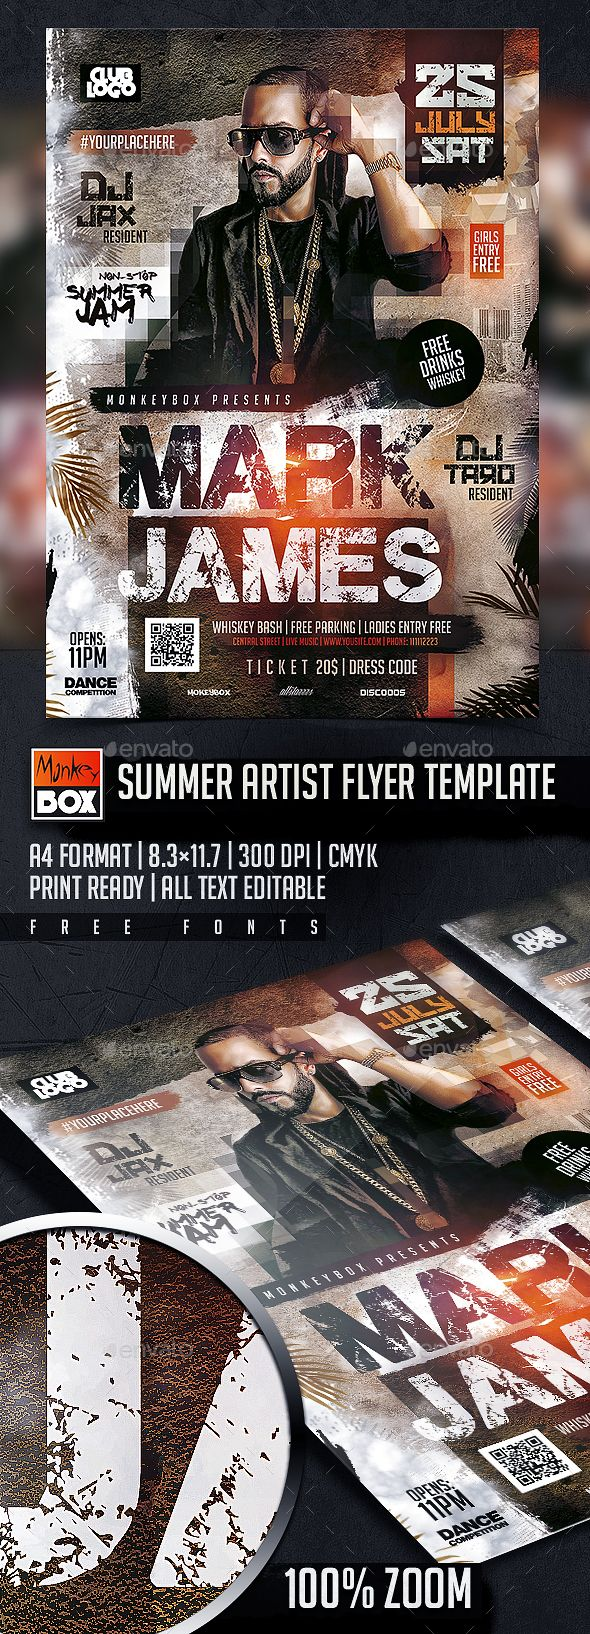 Summer Artist Flyer Template PSD. Download here: http://graphicriver.net/item/summer-artist-flyer-template/16668466?ref=ksioks